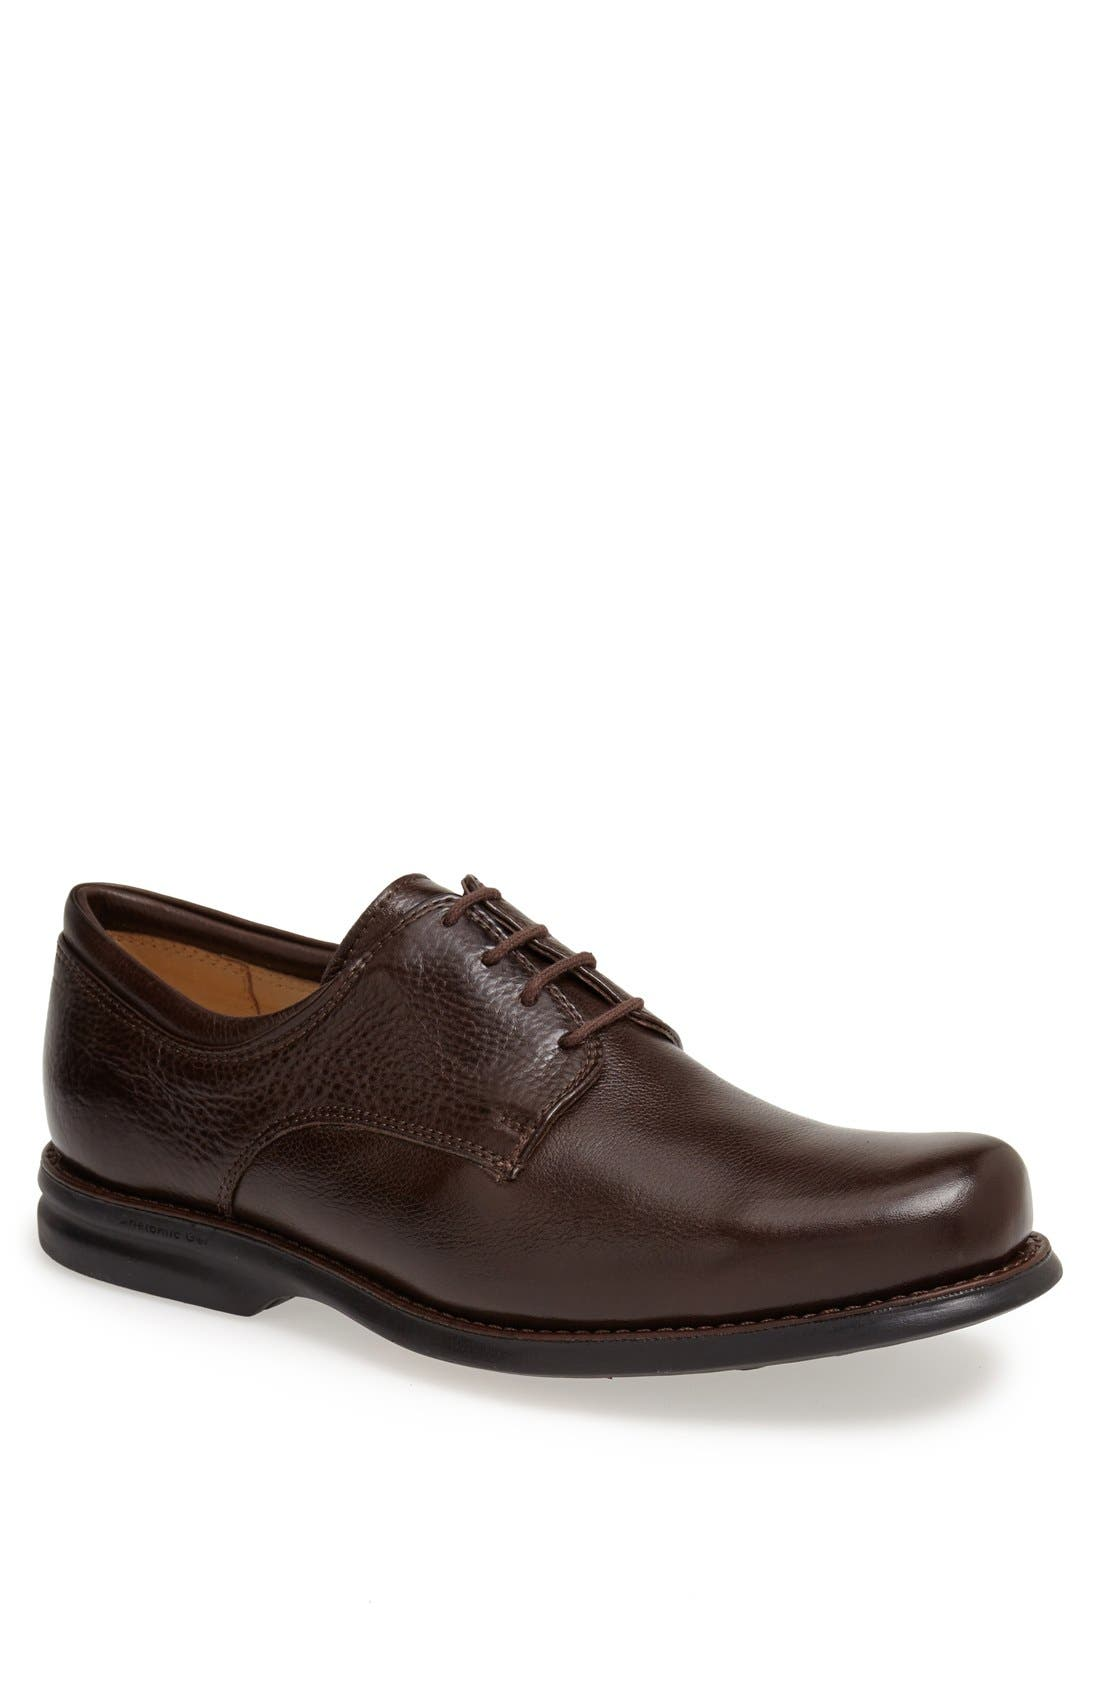 Anatomic & Co Niteroi Plain Toe Derby (Men)